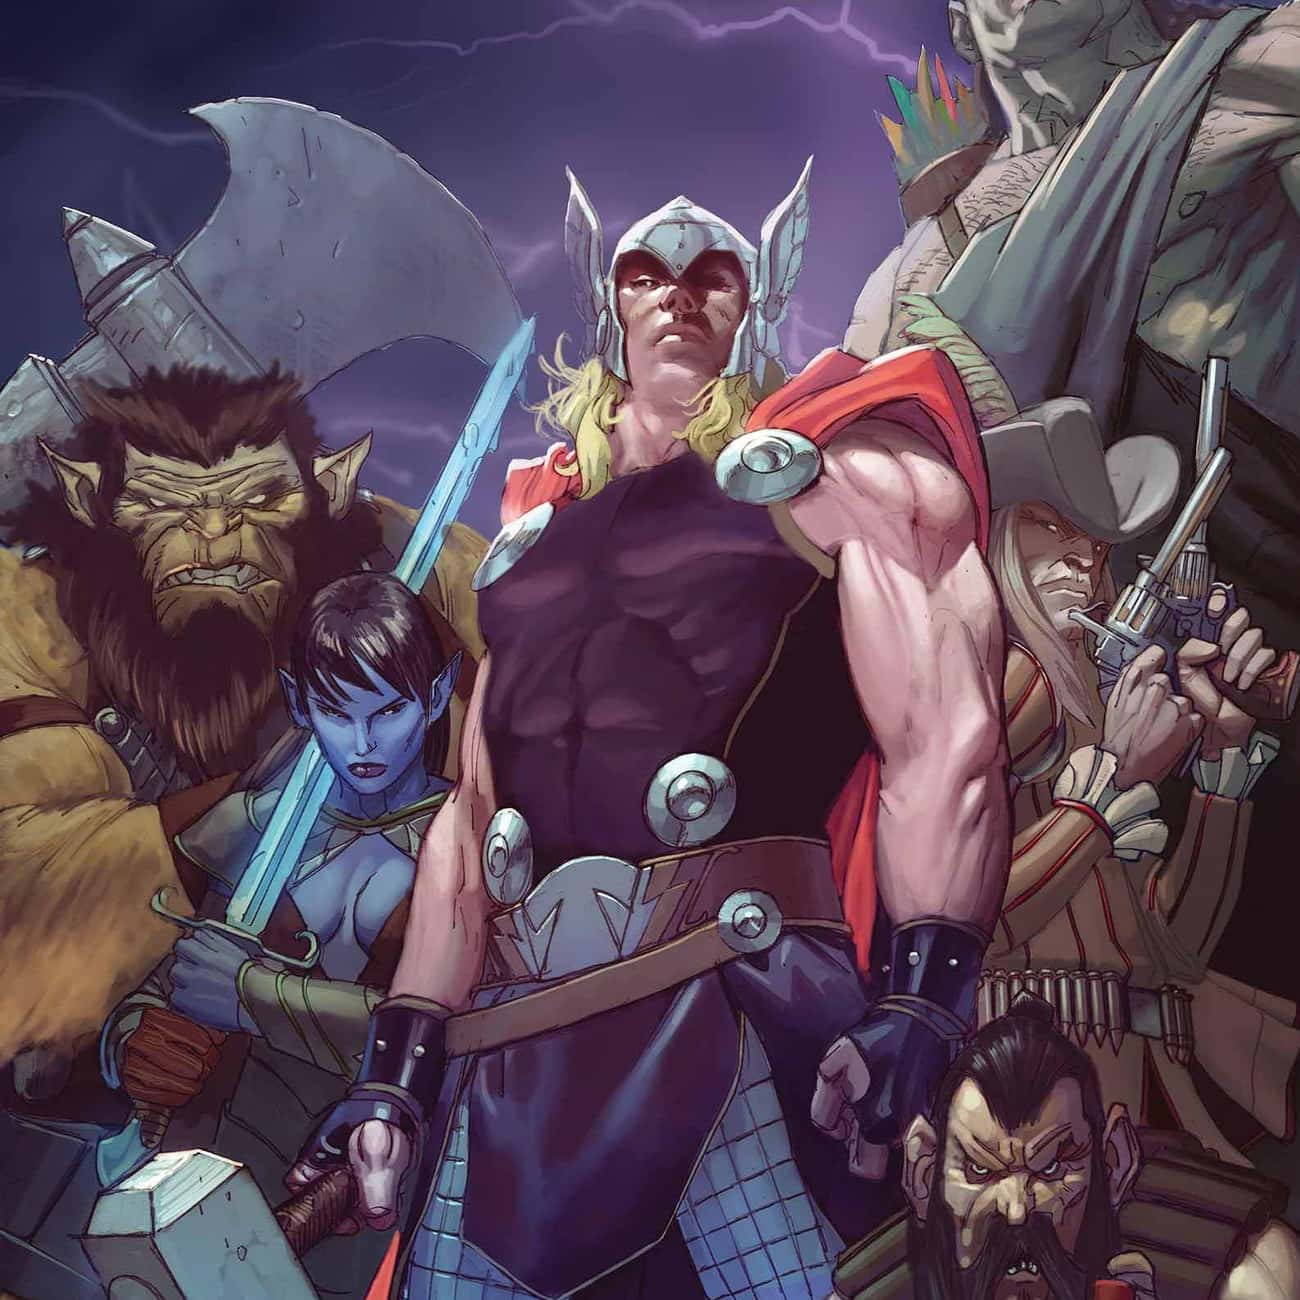 He Formed The League Of Realms is listed (or ranked) 4 on the list Why Thor's Comic Book Life Has Become Unrecognizable Over the Past Five Years